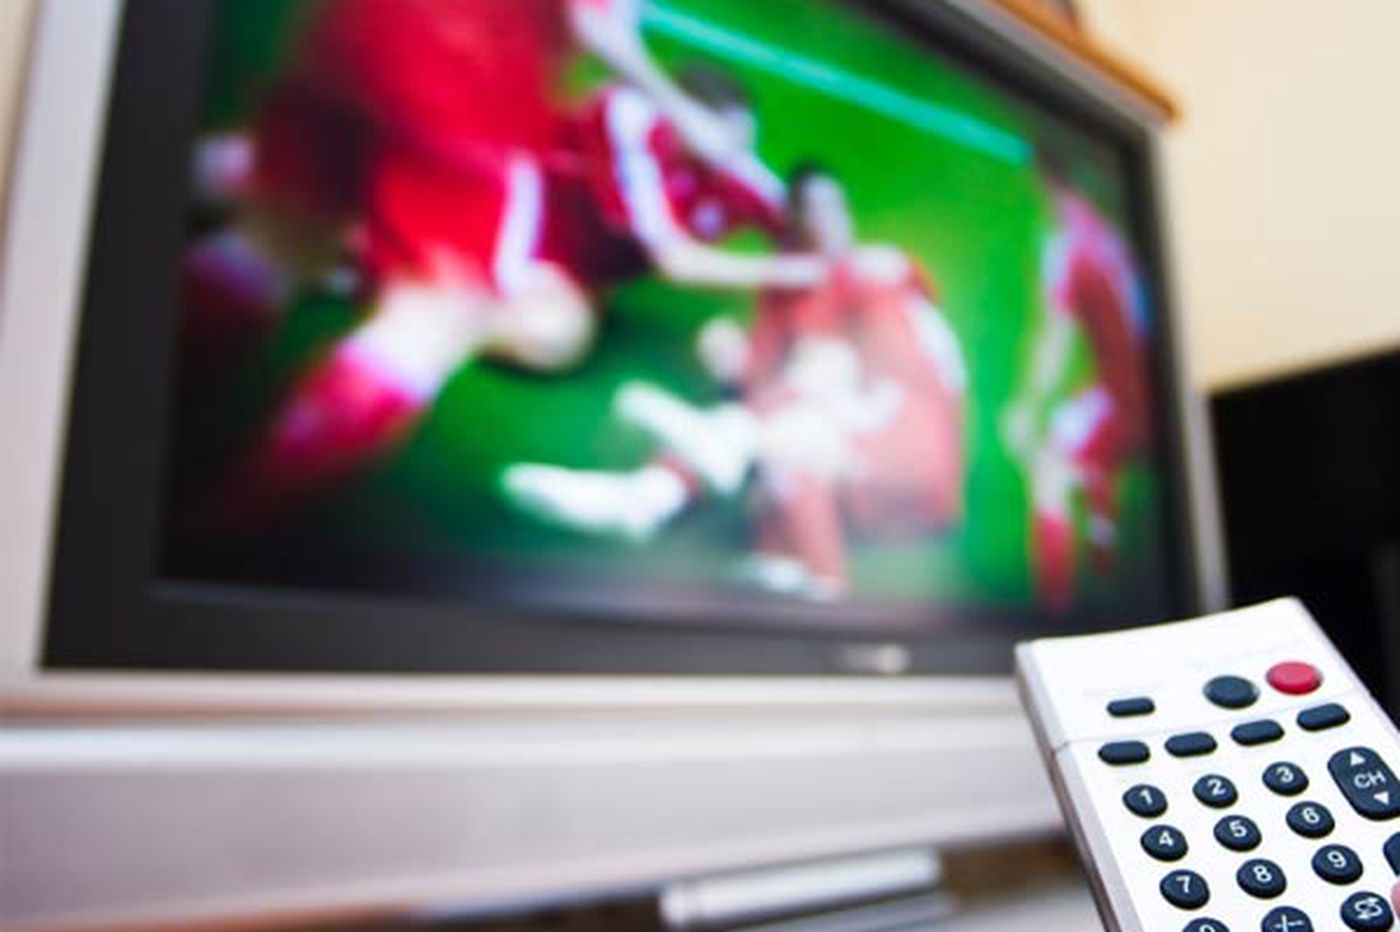 Enhancing the live sports experience